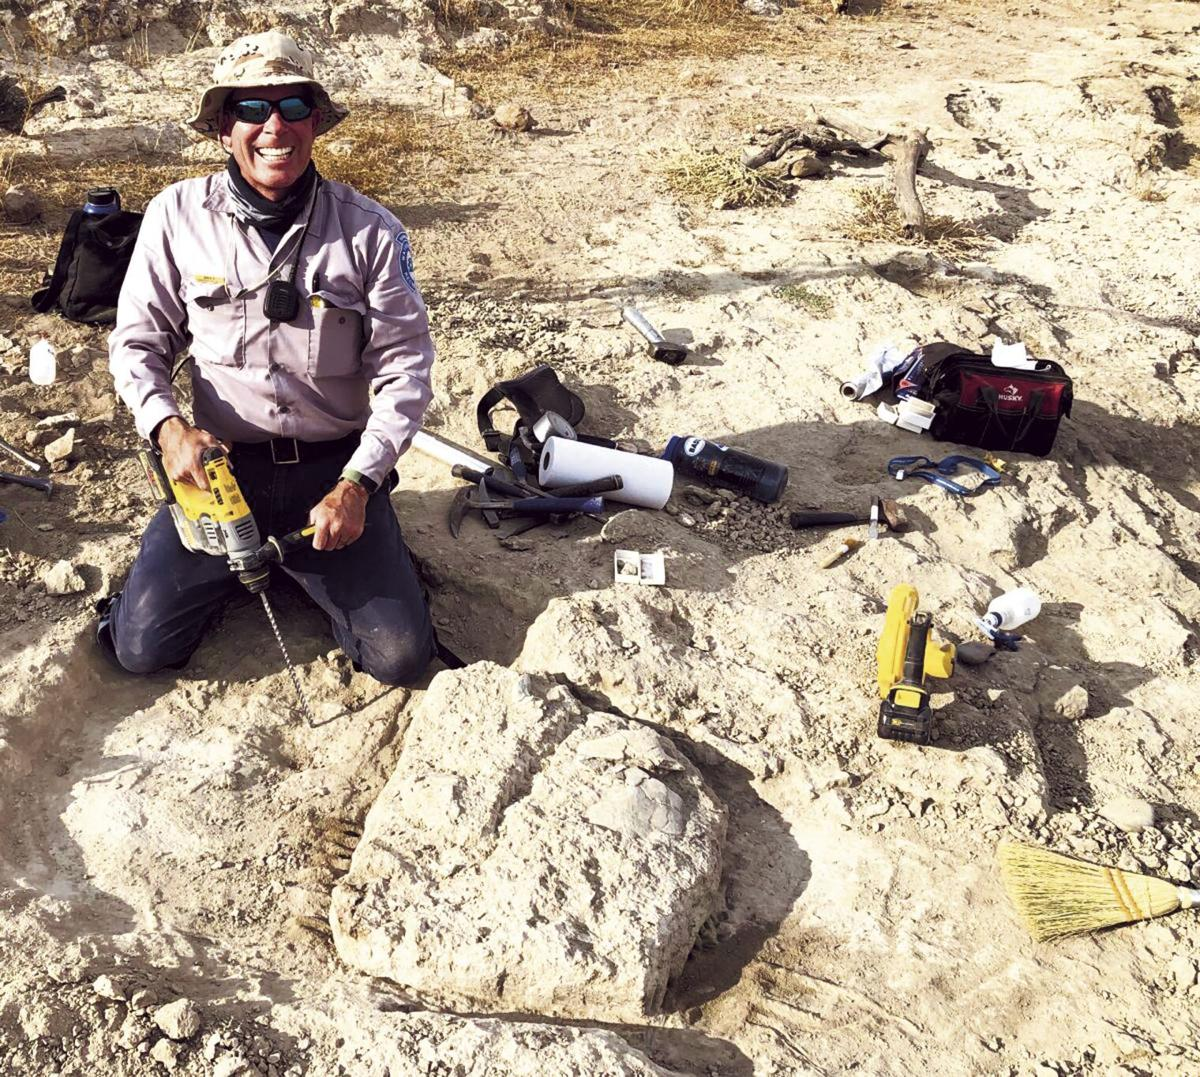 The Discovery: As fossils are revealed in the foothills, so are the mysteries